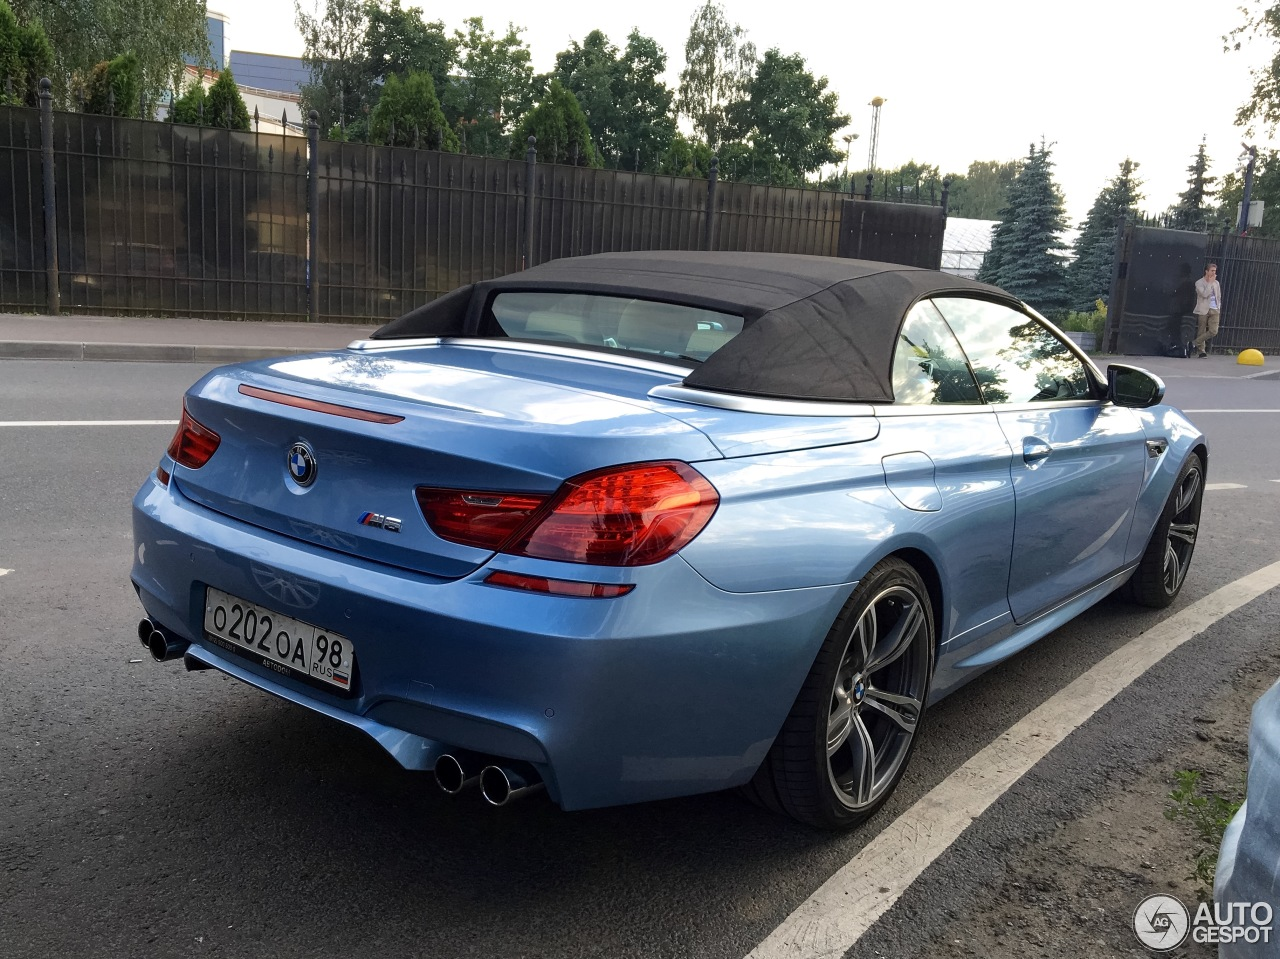 bmw m6 f12 cabriolet 11 august 2016 autogespot. Black Bedroom Furniture Sets. Home Design Ideas